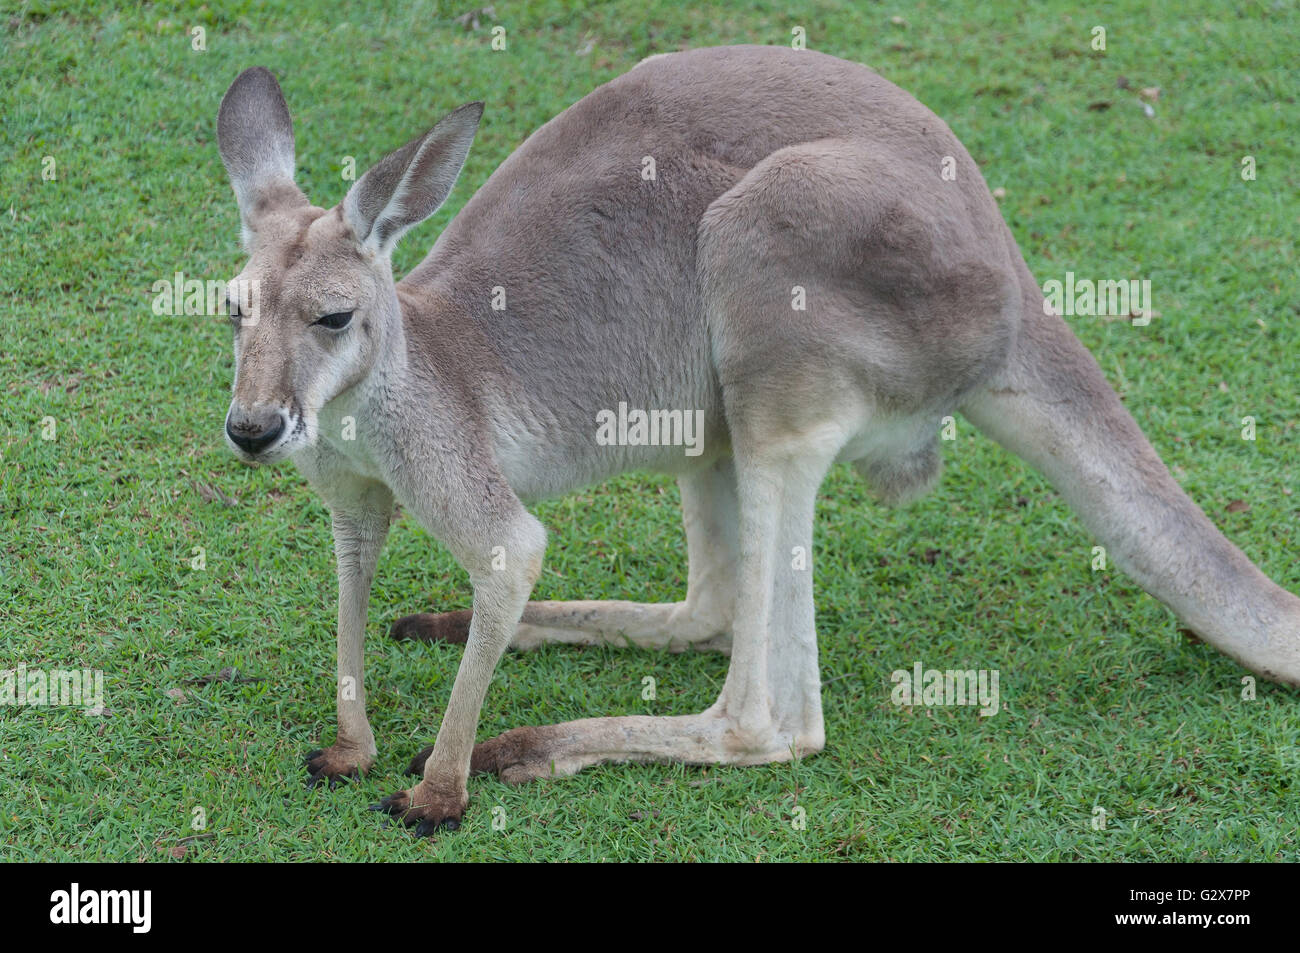 Canguro gris occidental en la reserva de koalas Lone Pine, Fig Tree Pocket, Brisbane, Queensland, Australia Imagen De Stock